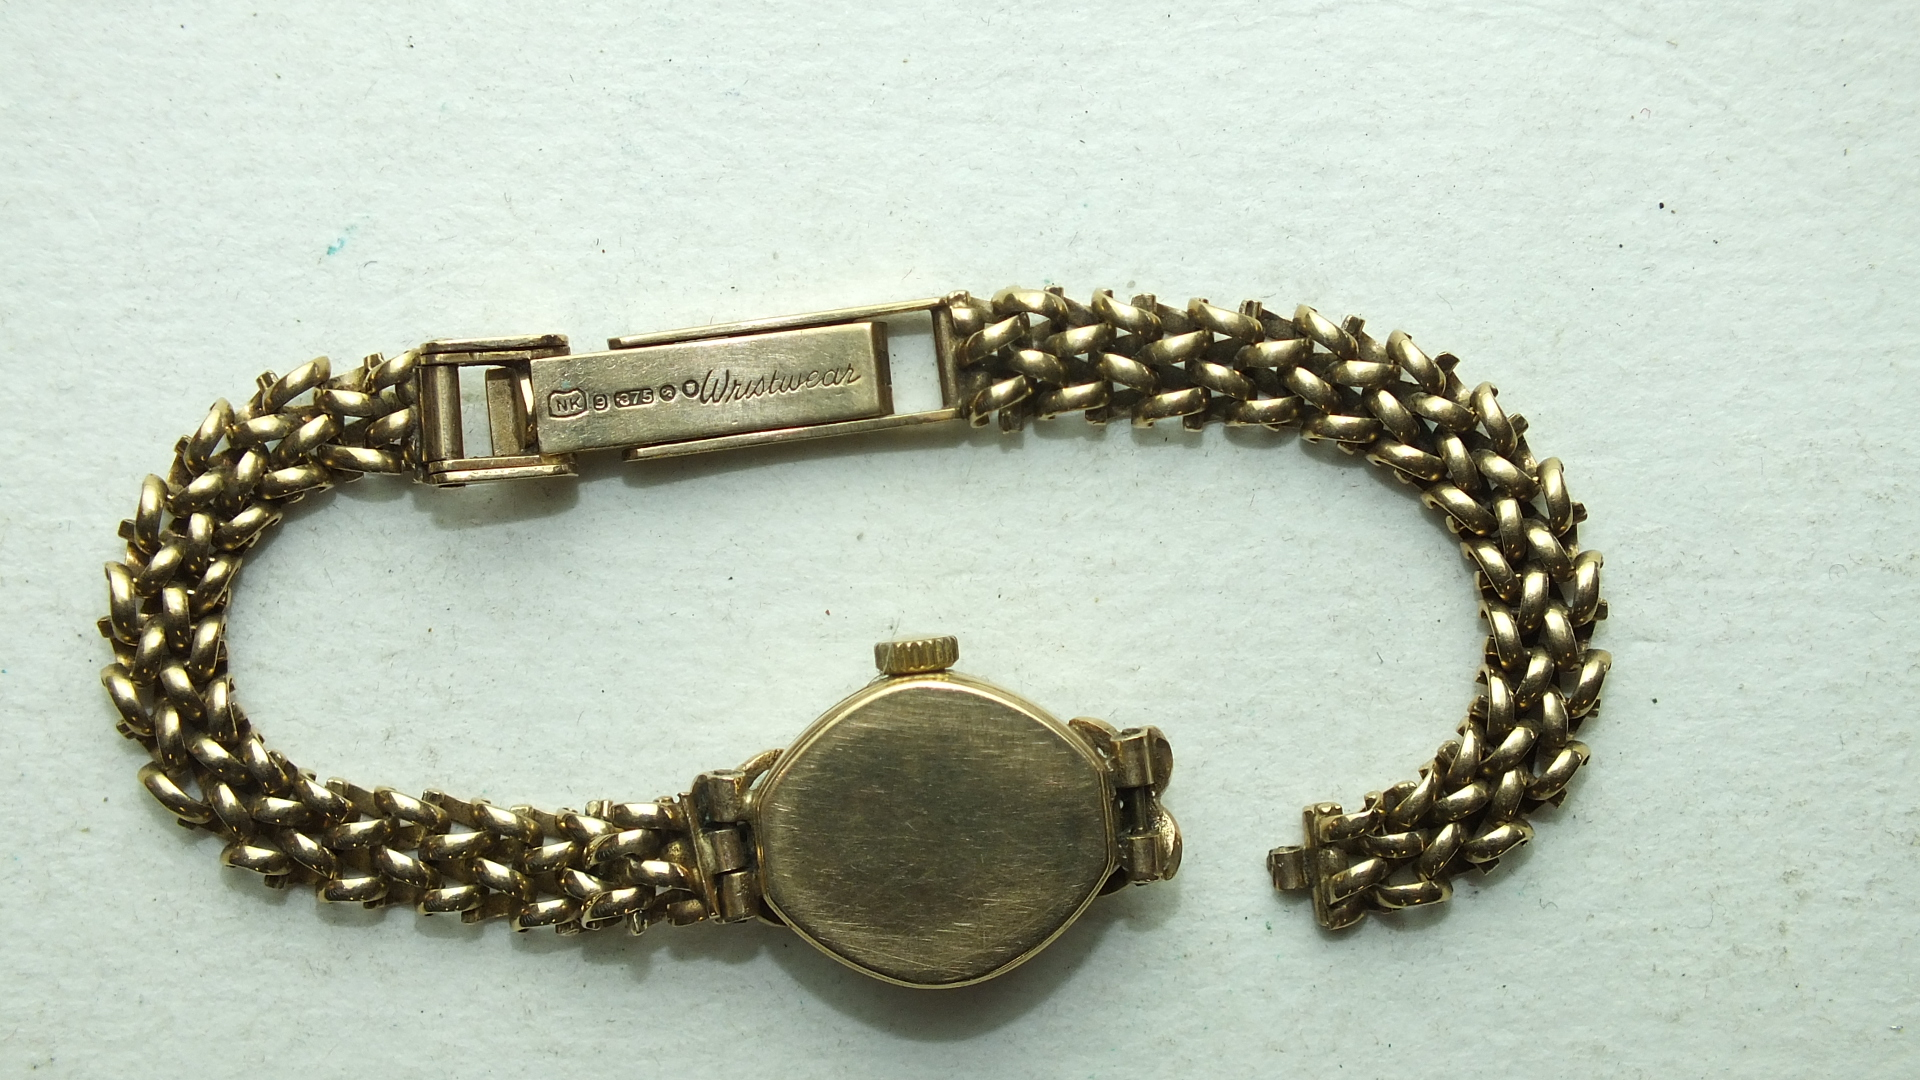 Lot 252 - Rotary, a ladies 9ct gold wrist watch on 9ct gold chain bracelet, 13.8g, (bracelet a/f).